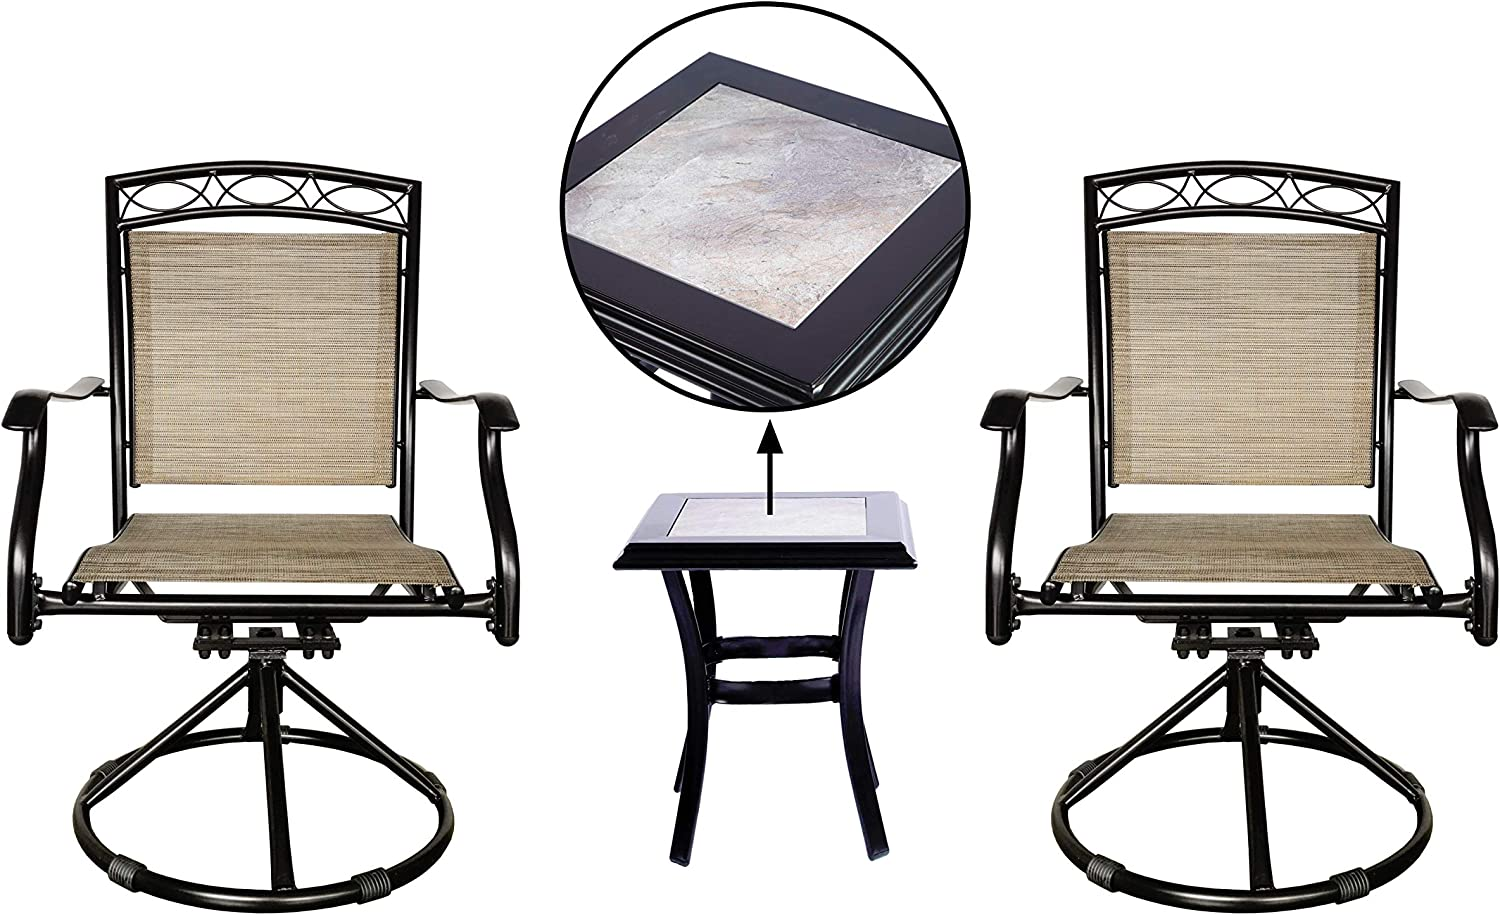 LUCKYBERRY Outdoor Swivel Chairs Set Patio Dining Rocker Bistro Chair of 2 Chairs, and 1 Table with Tile top, Brown